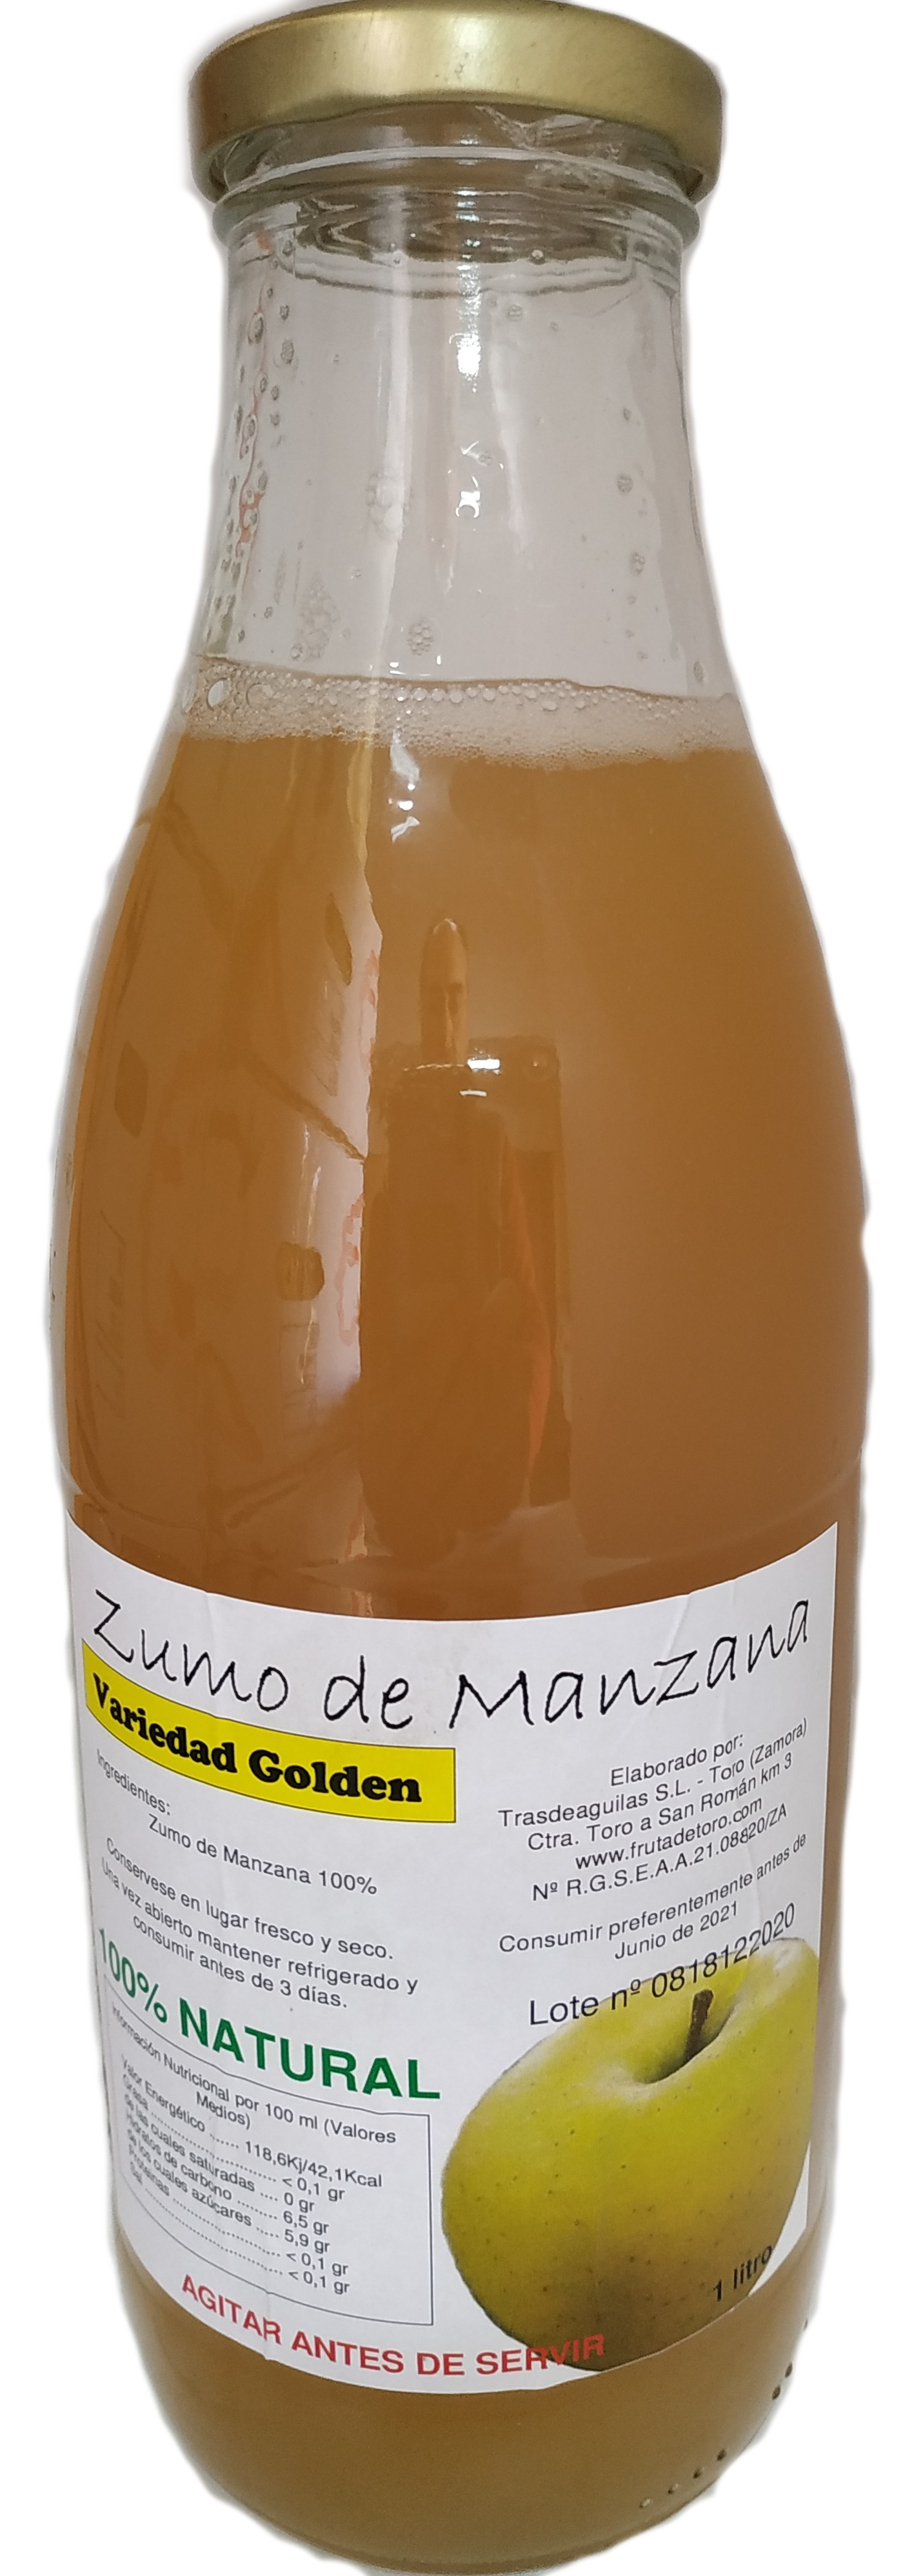 Zumo Natural de Manzana Golden